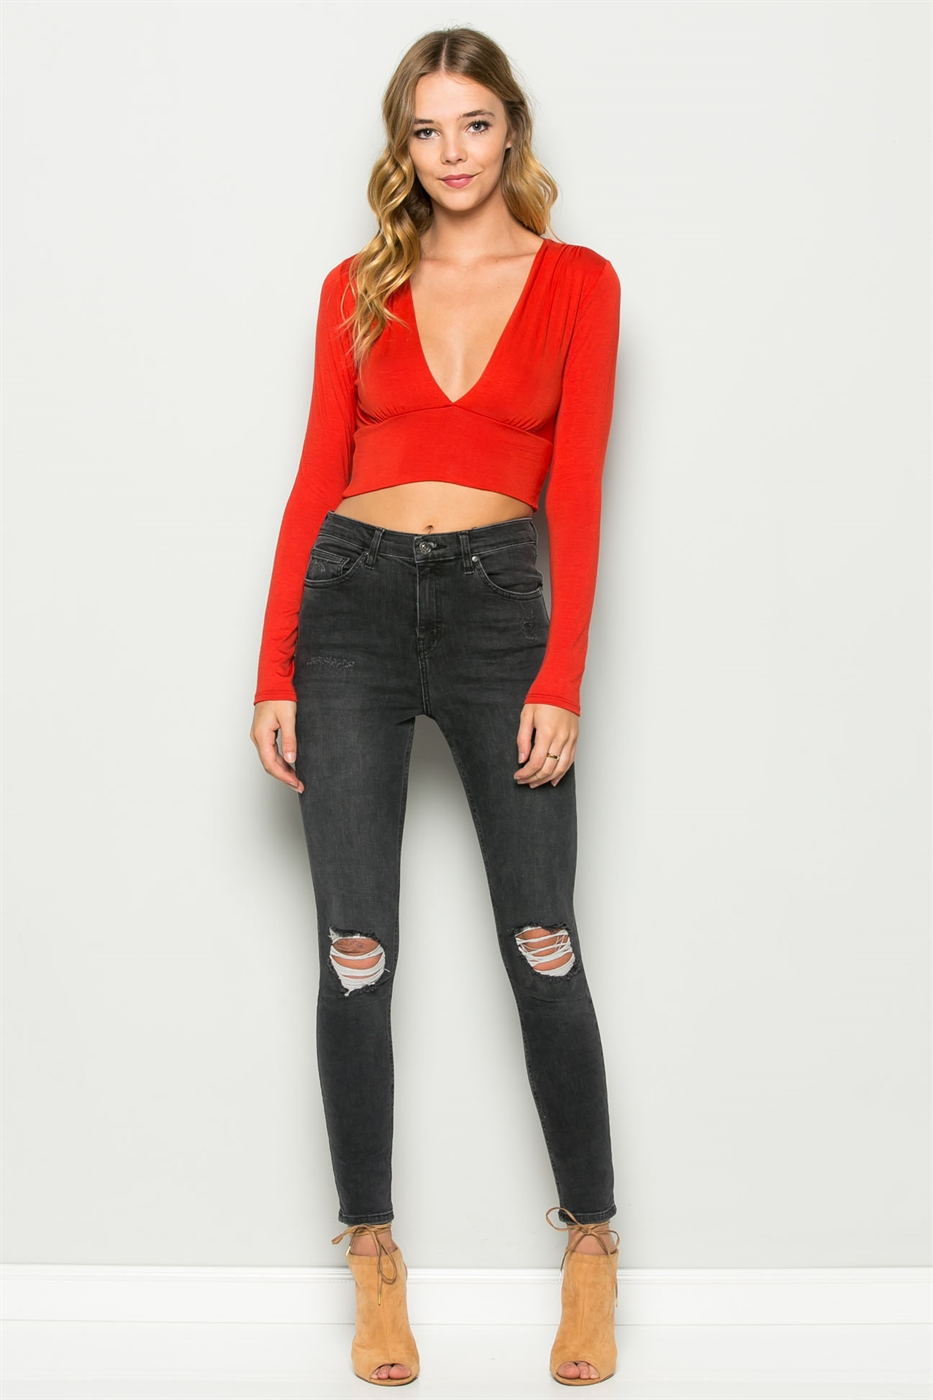 L/S FRONT LAYERED PLUNGED TOP - orangeshine.com